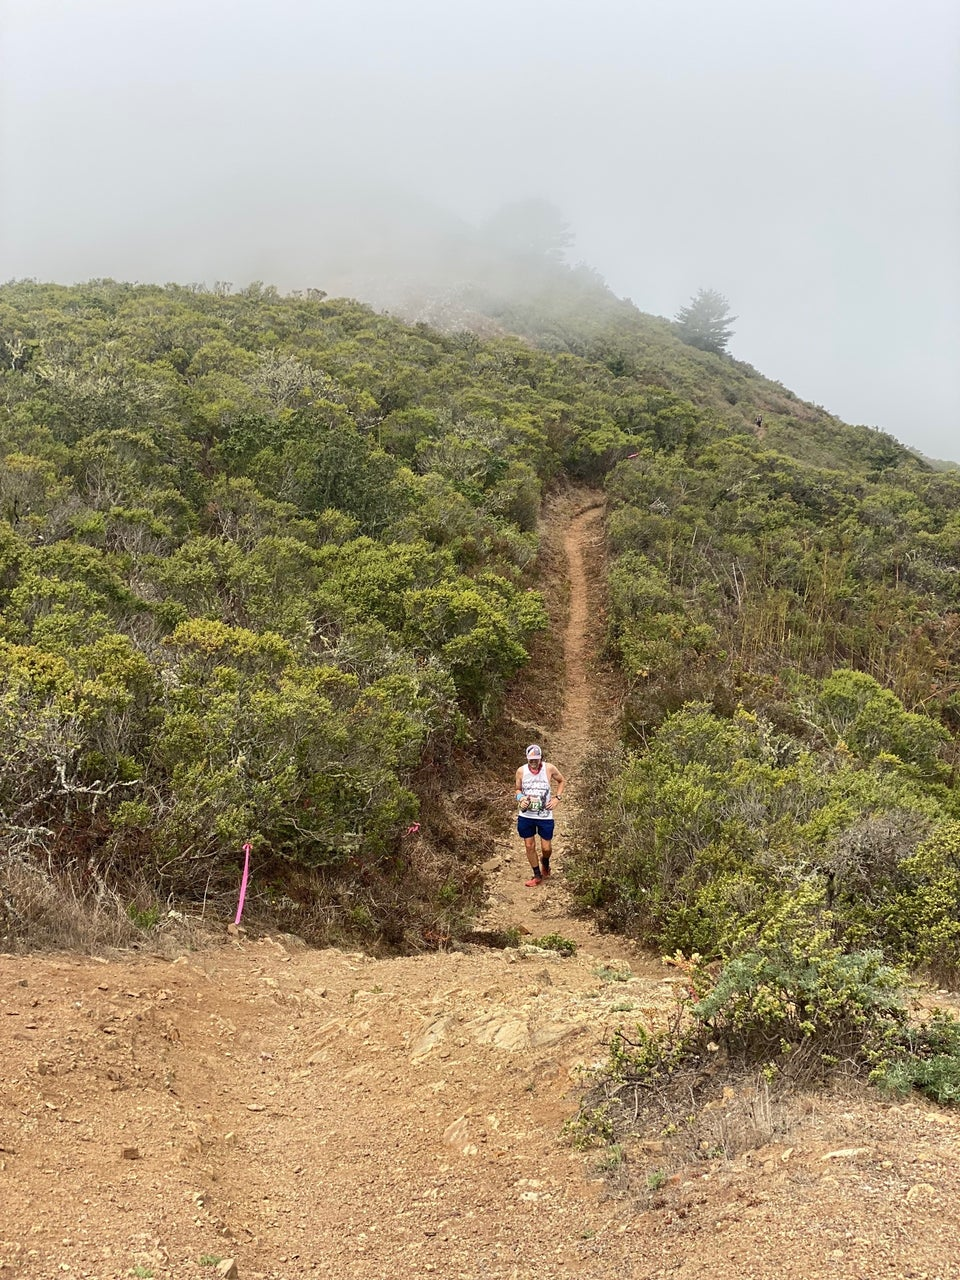 Fogged-in view of a lush green hillside, narrow singletrack trail cutting up from the right and approaching the center, with Tantek power hiking uphill, grinning, water bottle in right hand, holding his side with his left.